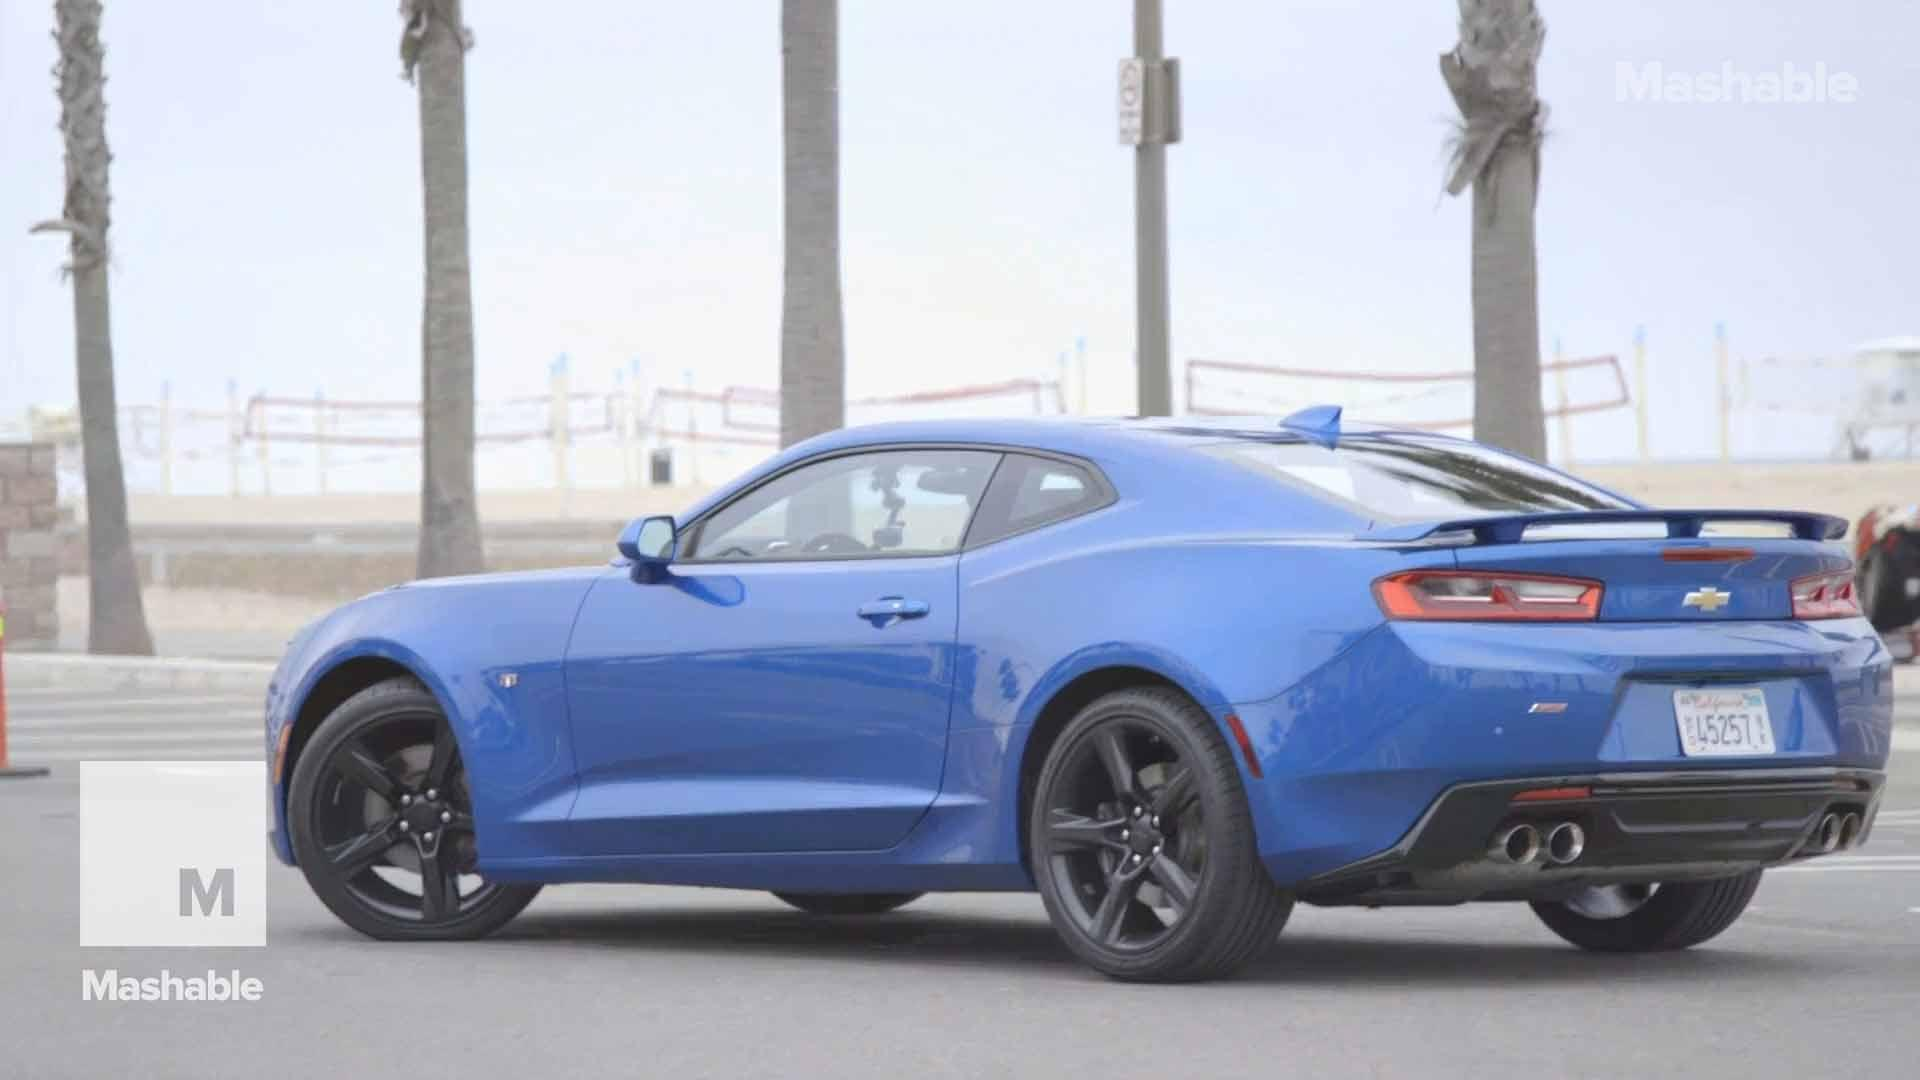 The American muscle car that wirelessly charges your phone while doing donuts